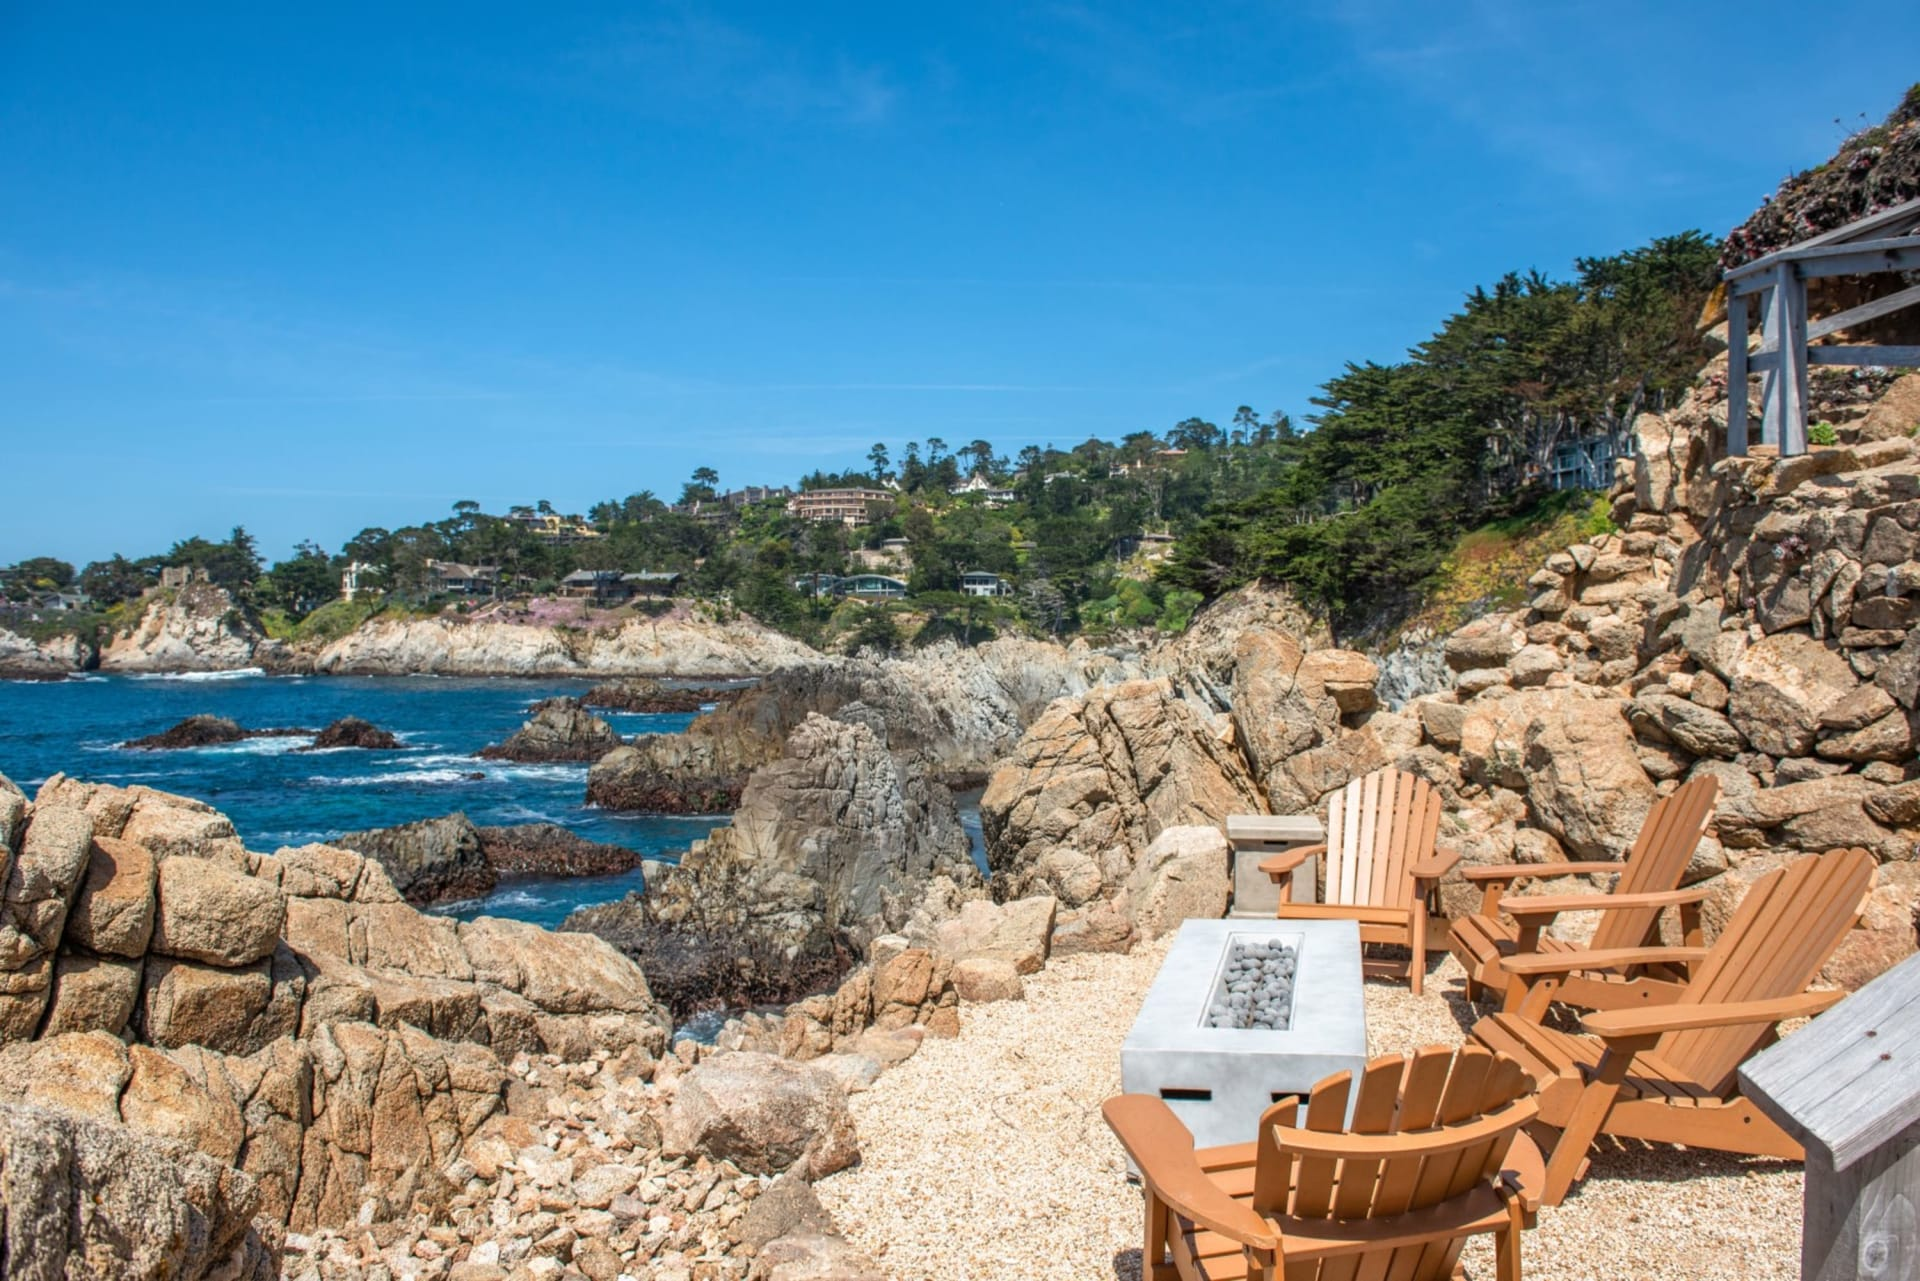 Carmel Highlands compound featured in 'Basic Instinct' lists for $52 million